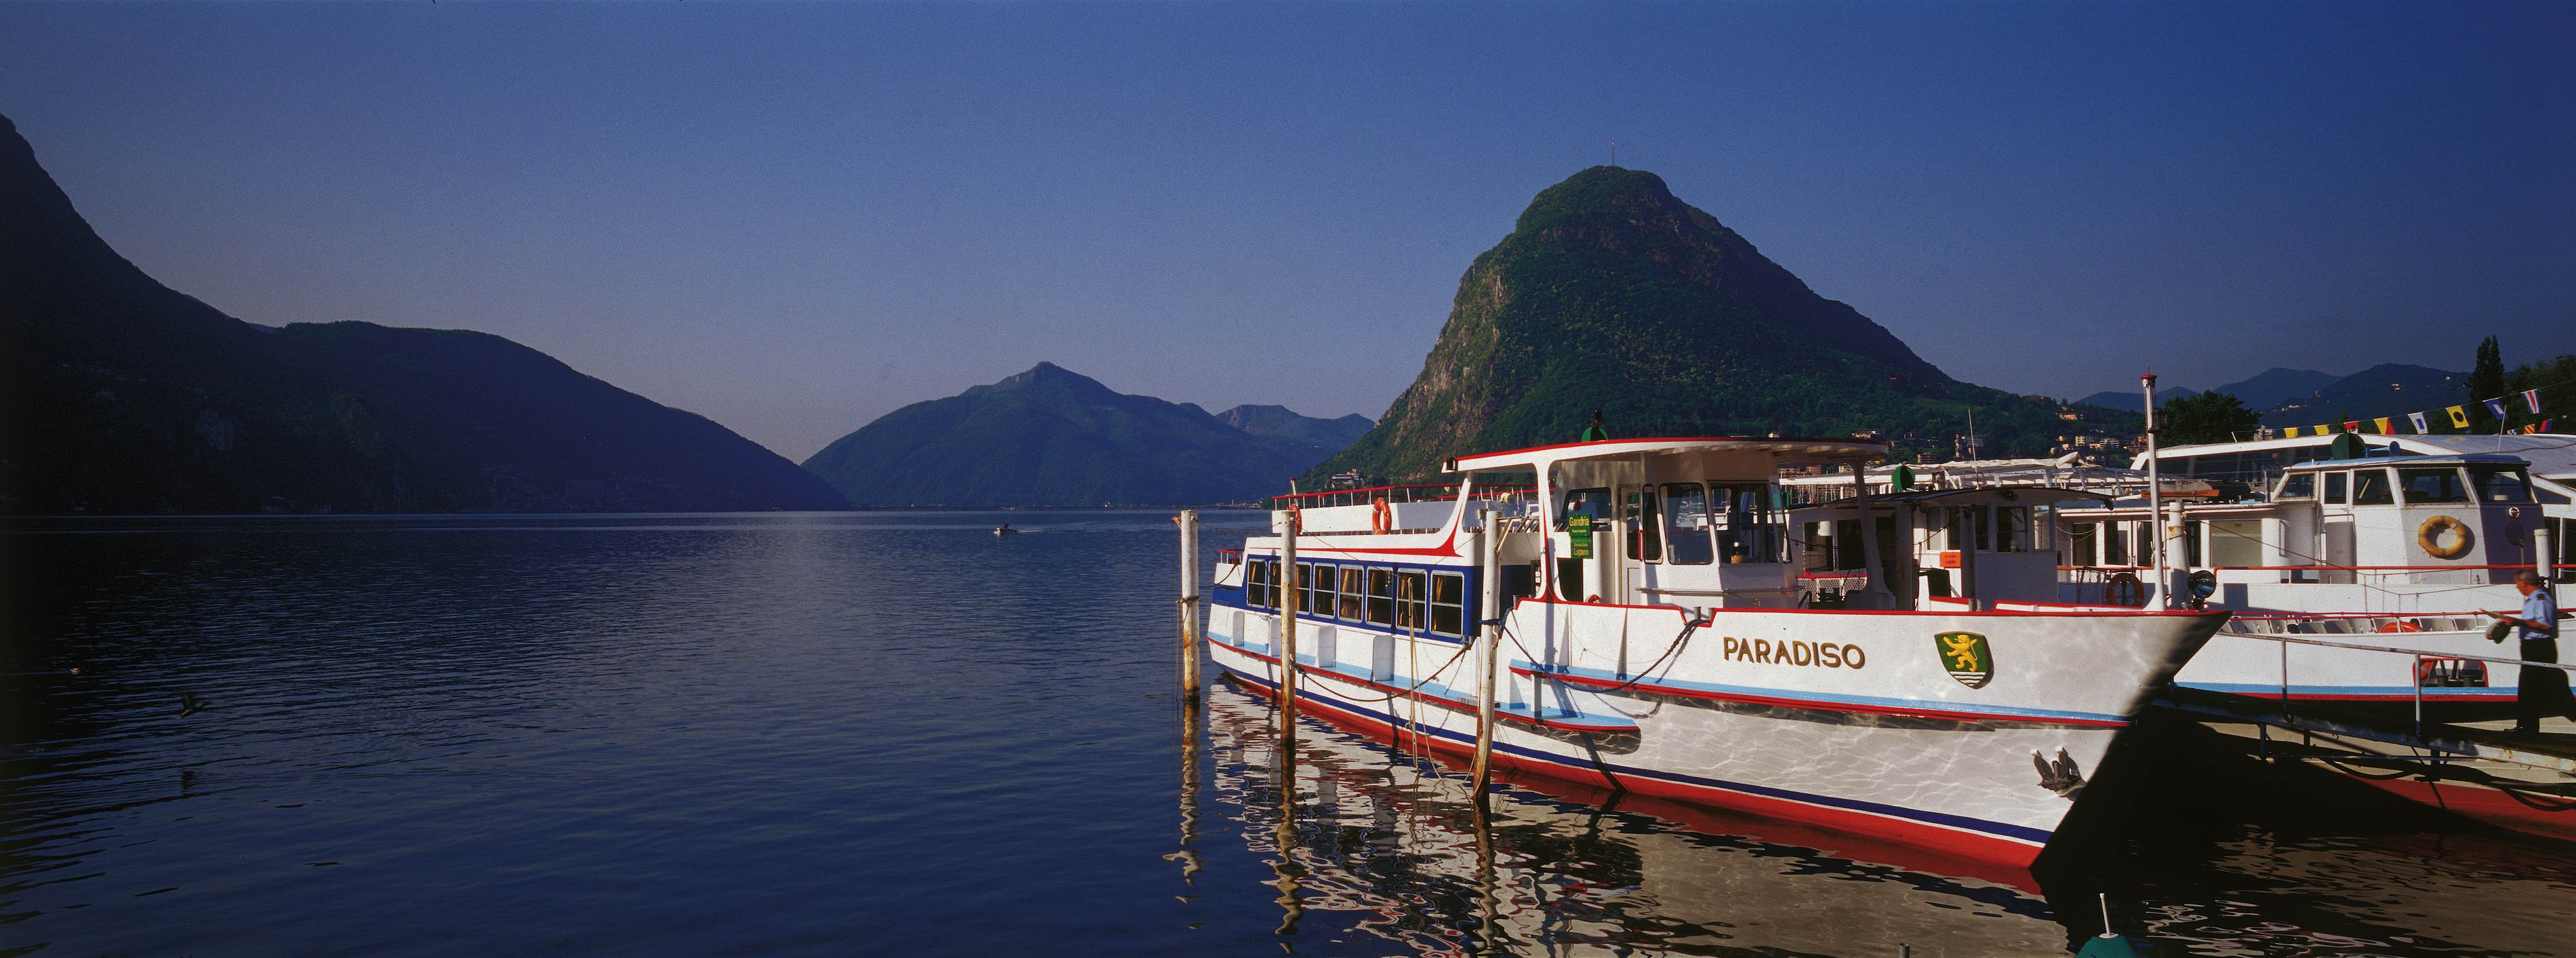 Boats on the Lugano lake in the evening